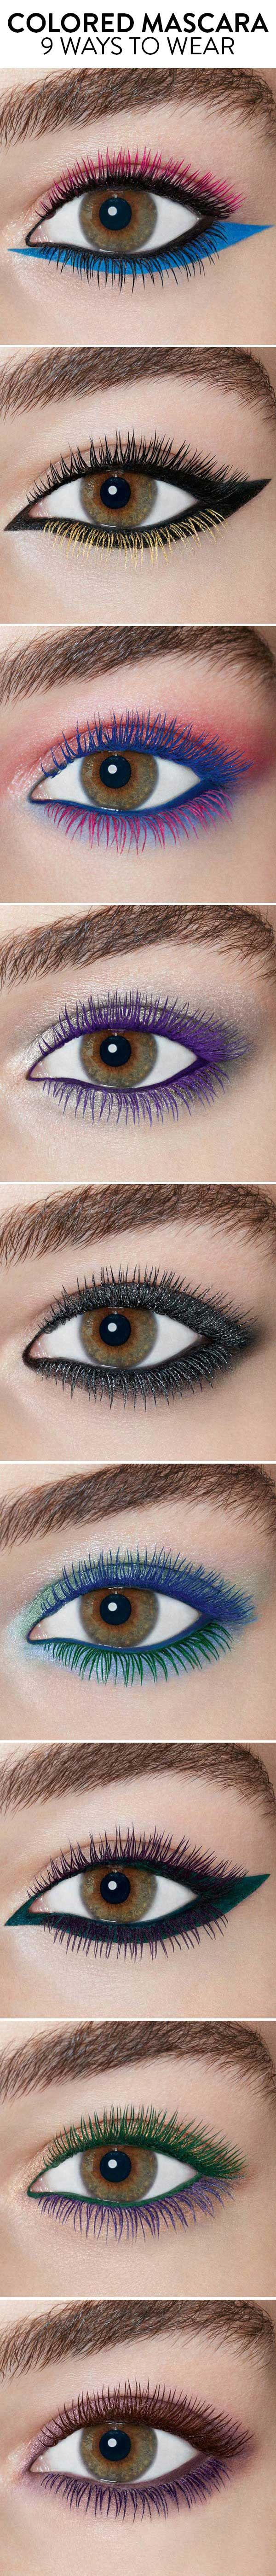 Colored mascara: best new colors and how to wear from Nordstrom.